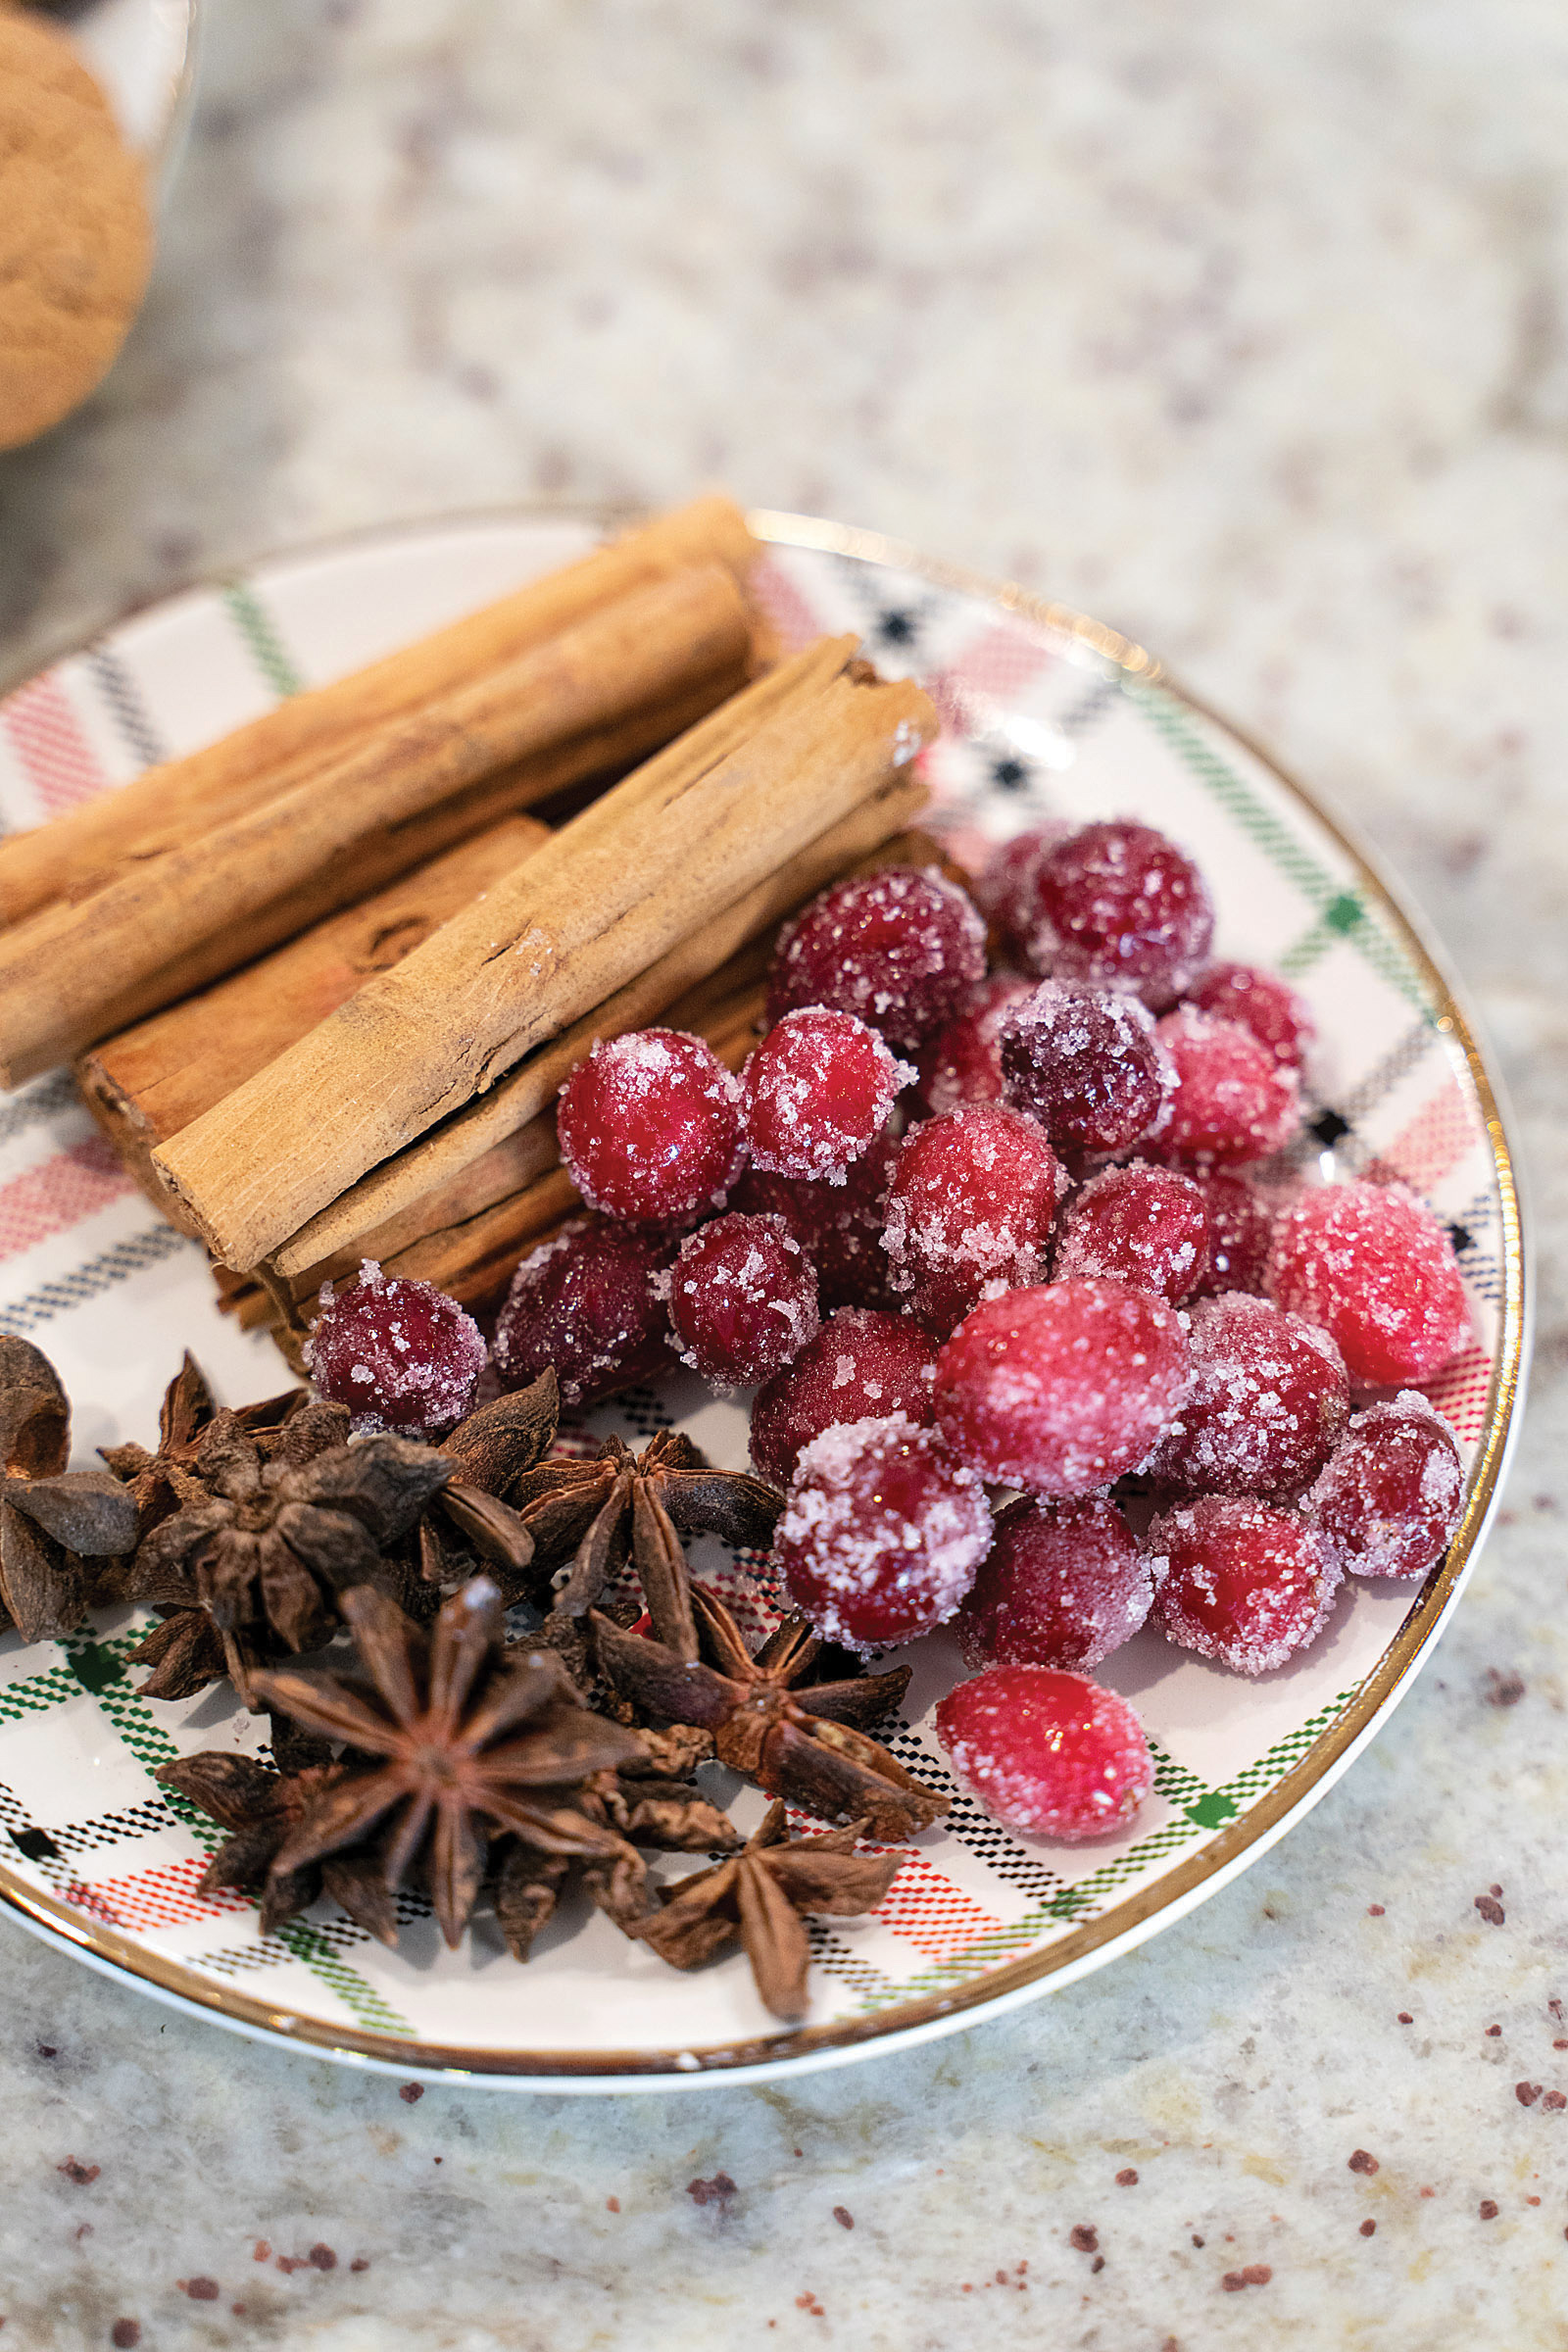 holiday cakes garnishes star anise cinnamon sticks and sugared cranberries